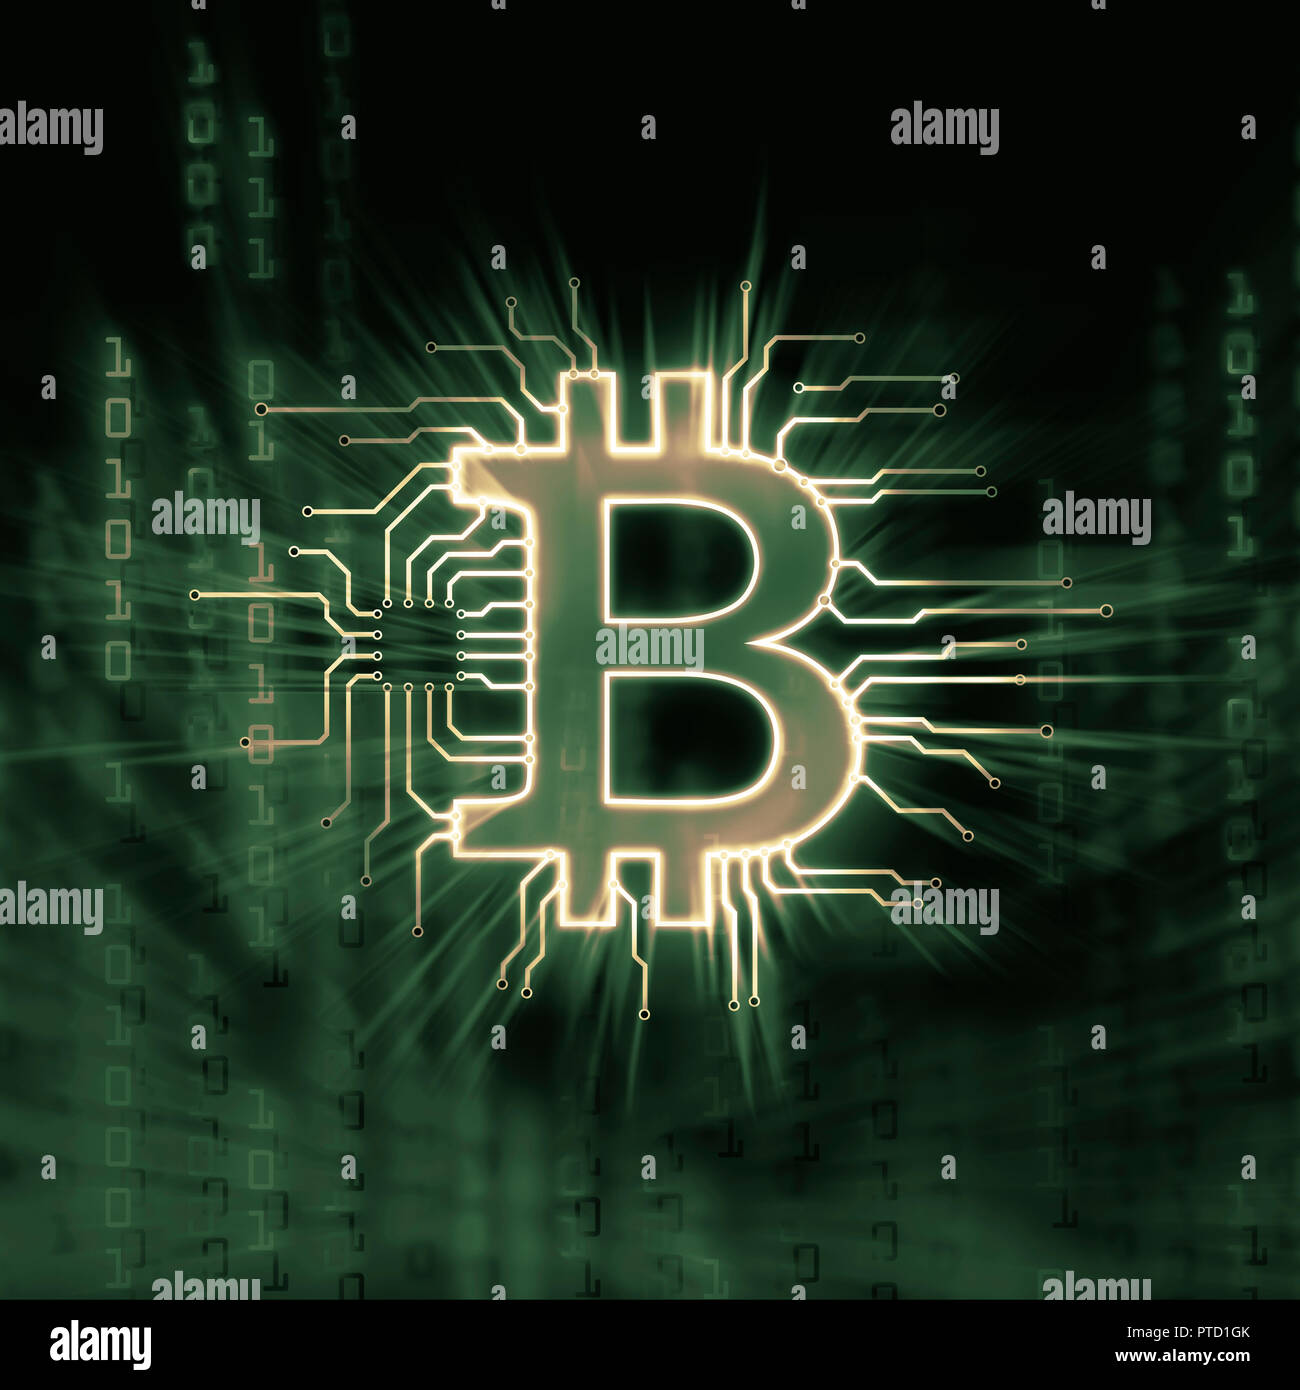 Symbolic picture, Bitcoin, cryptocurrency, digital currency, logo connected to a blockchain network in green colors - Stock Image